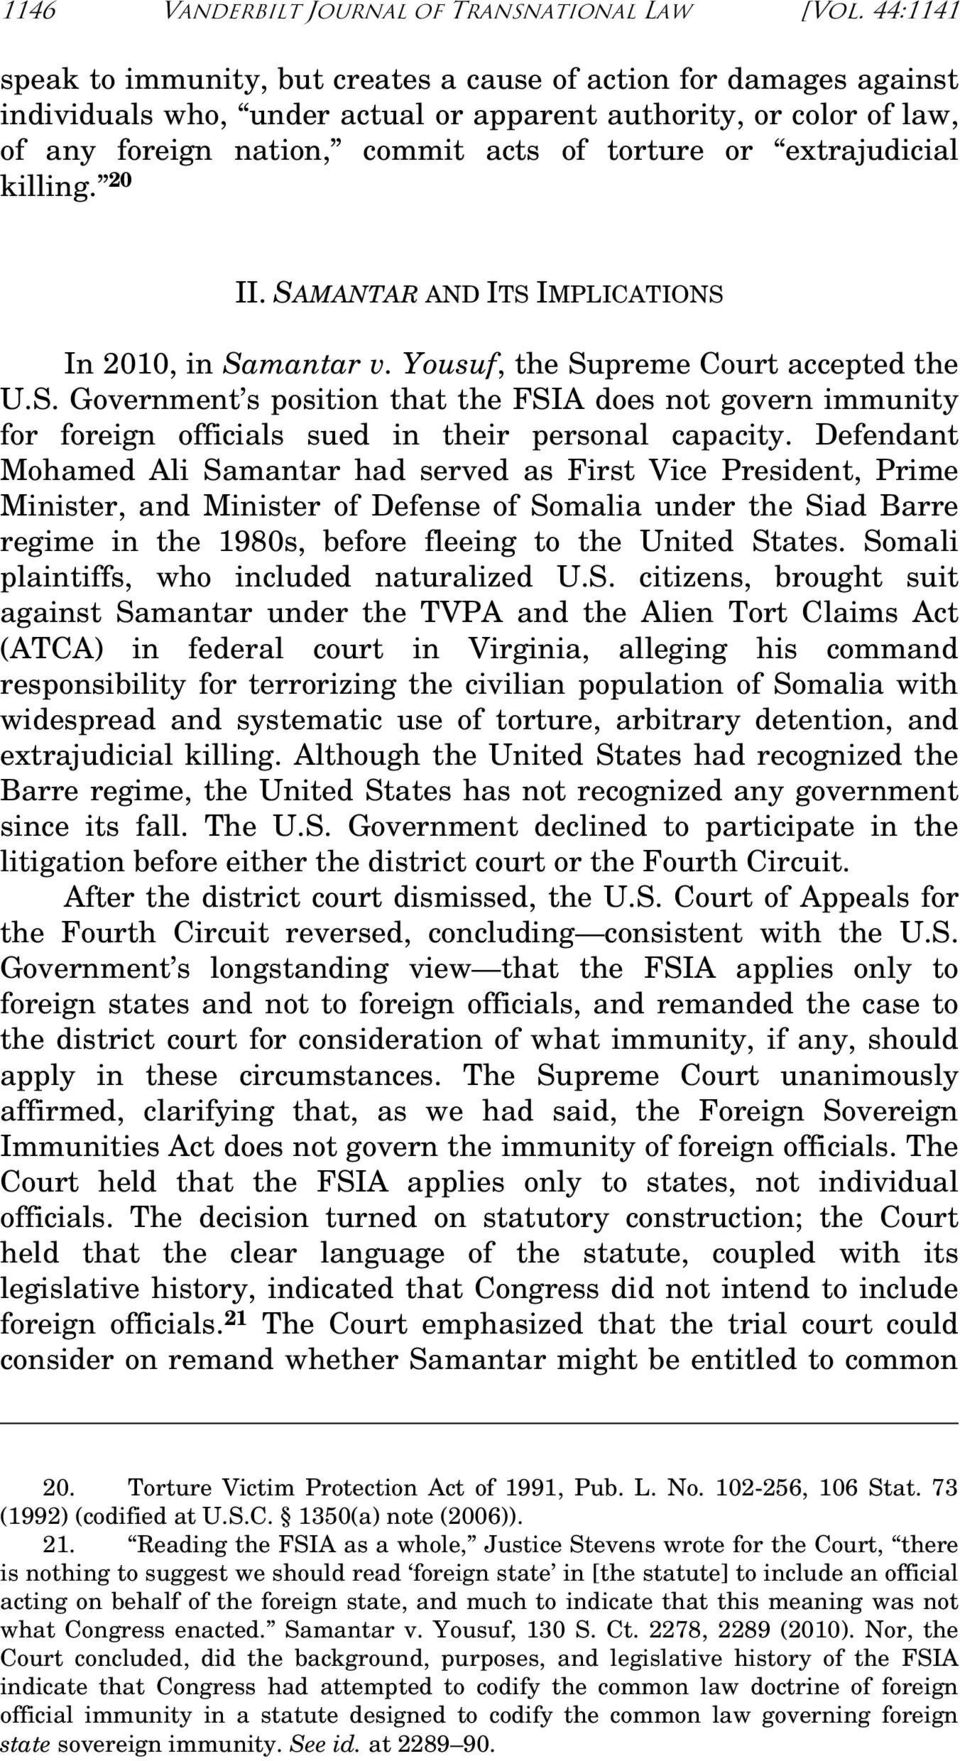 extrajudicial killing. 20 II. SAMANTAR AND ITS IMPLICATIONS In 2010, in Samantar v. Yousuf, the Supreme Court accepted the U.S. Government s position that the FSIA does not govern immunity for foreign officials sued in their personal capacity.